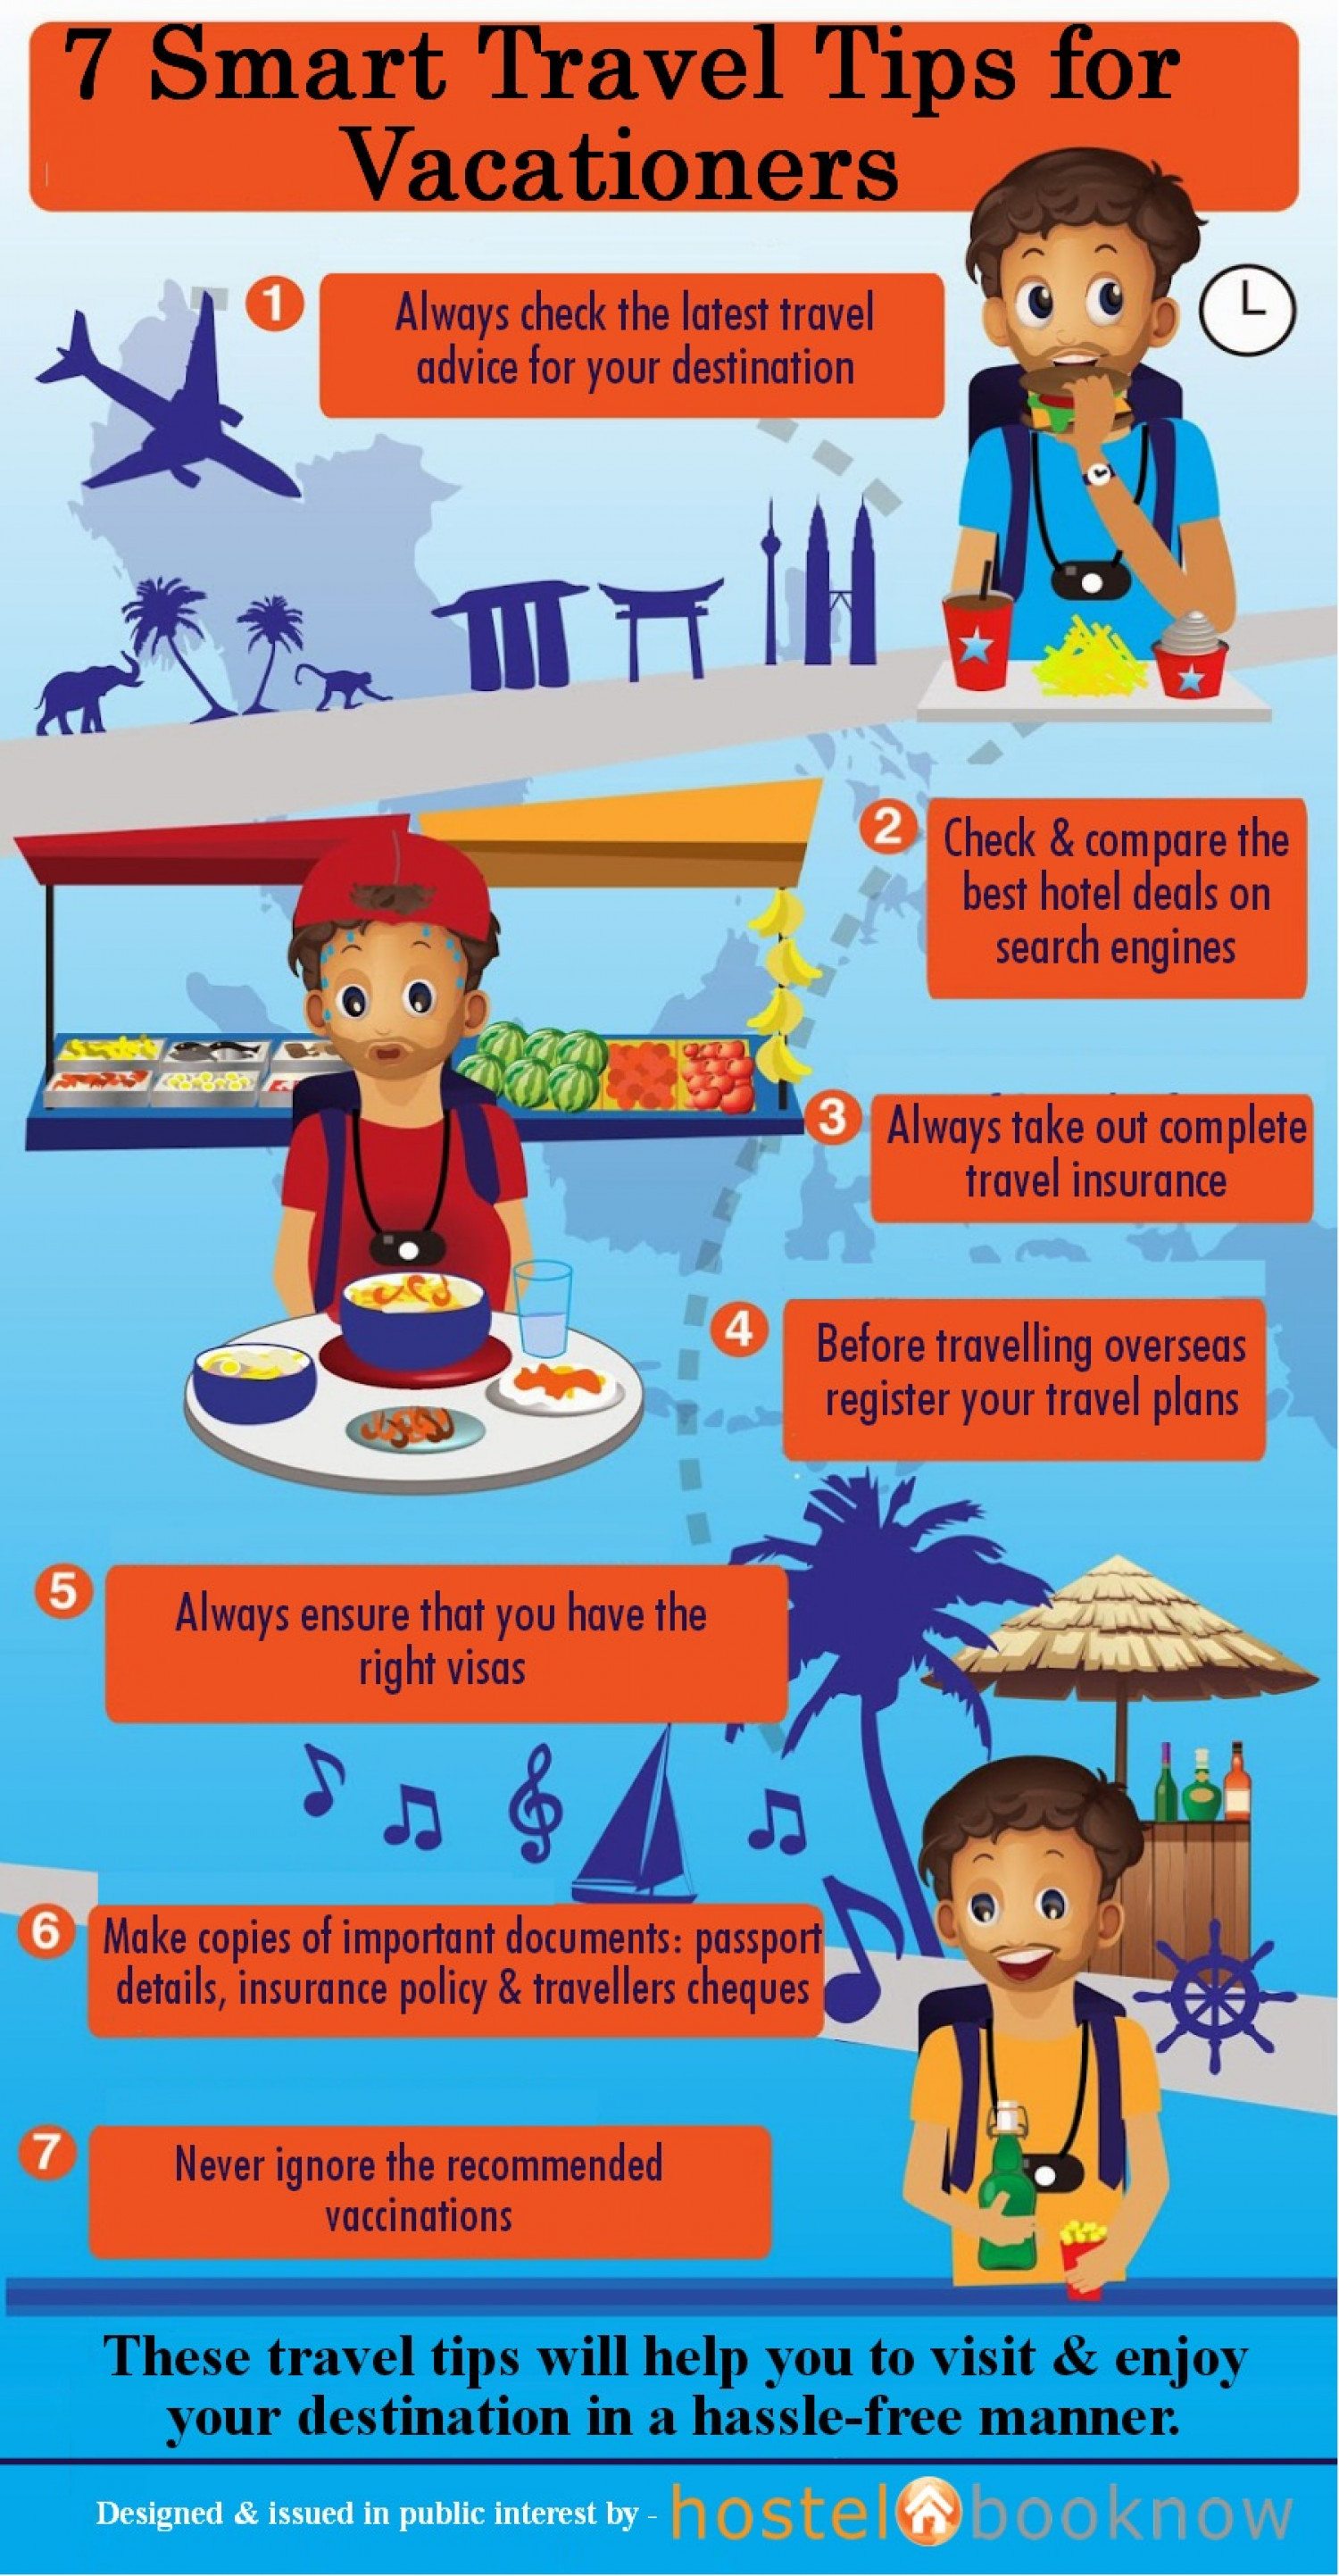 7 Smart Travel Tips for Vacationers Infographic